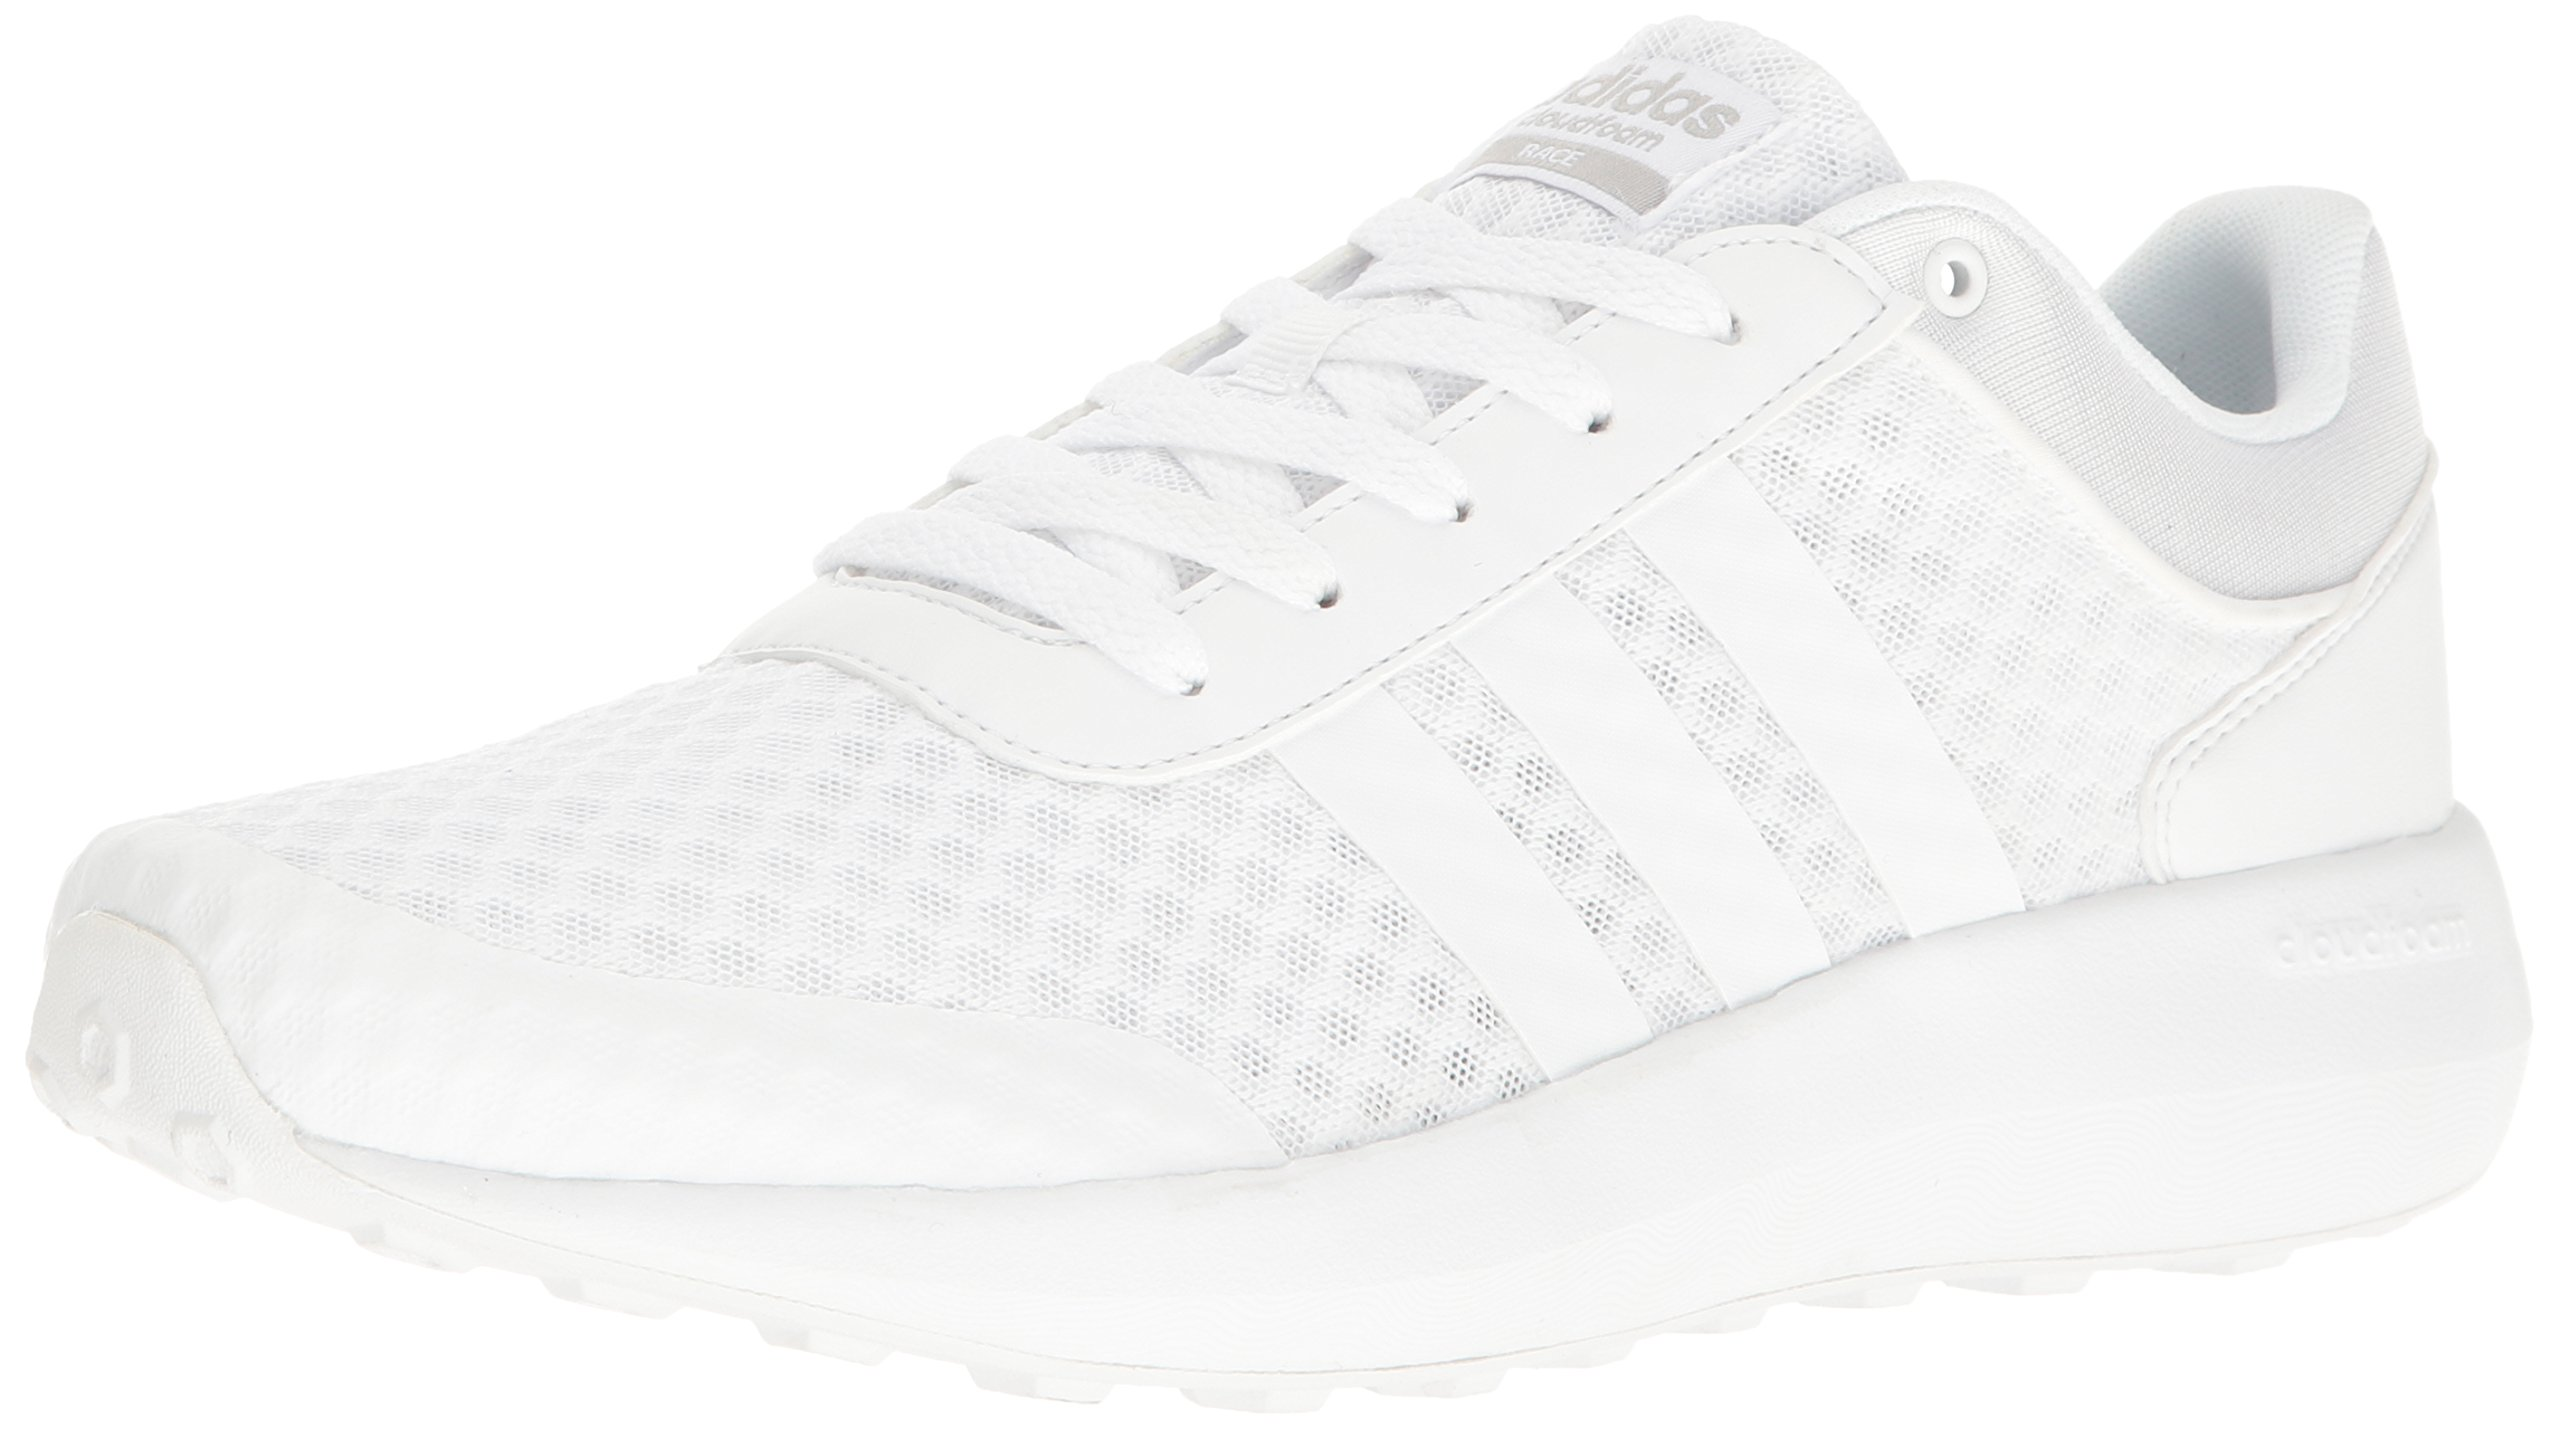 adidas Men's Cloudfoam Race Running Shoe, White/Clear Onix, 9 D-Medium